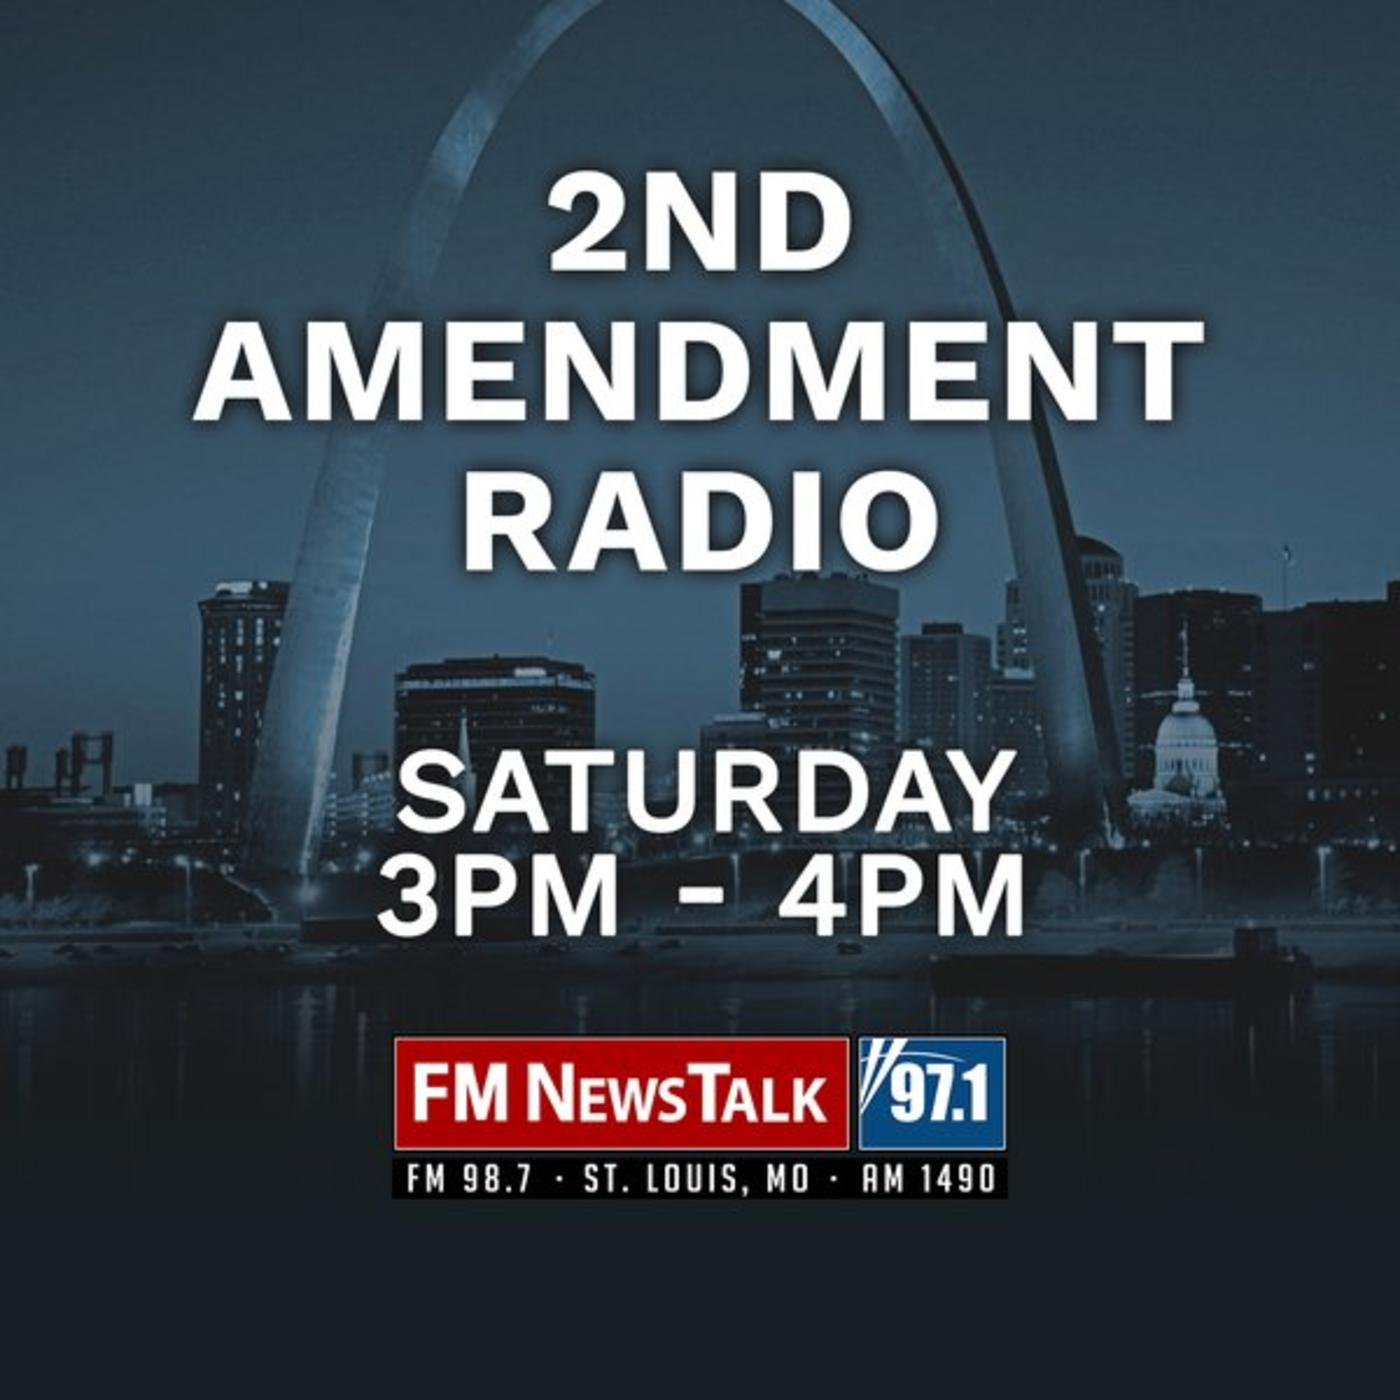 Second Amendment Radio